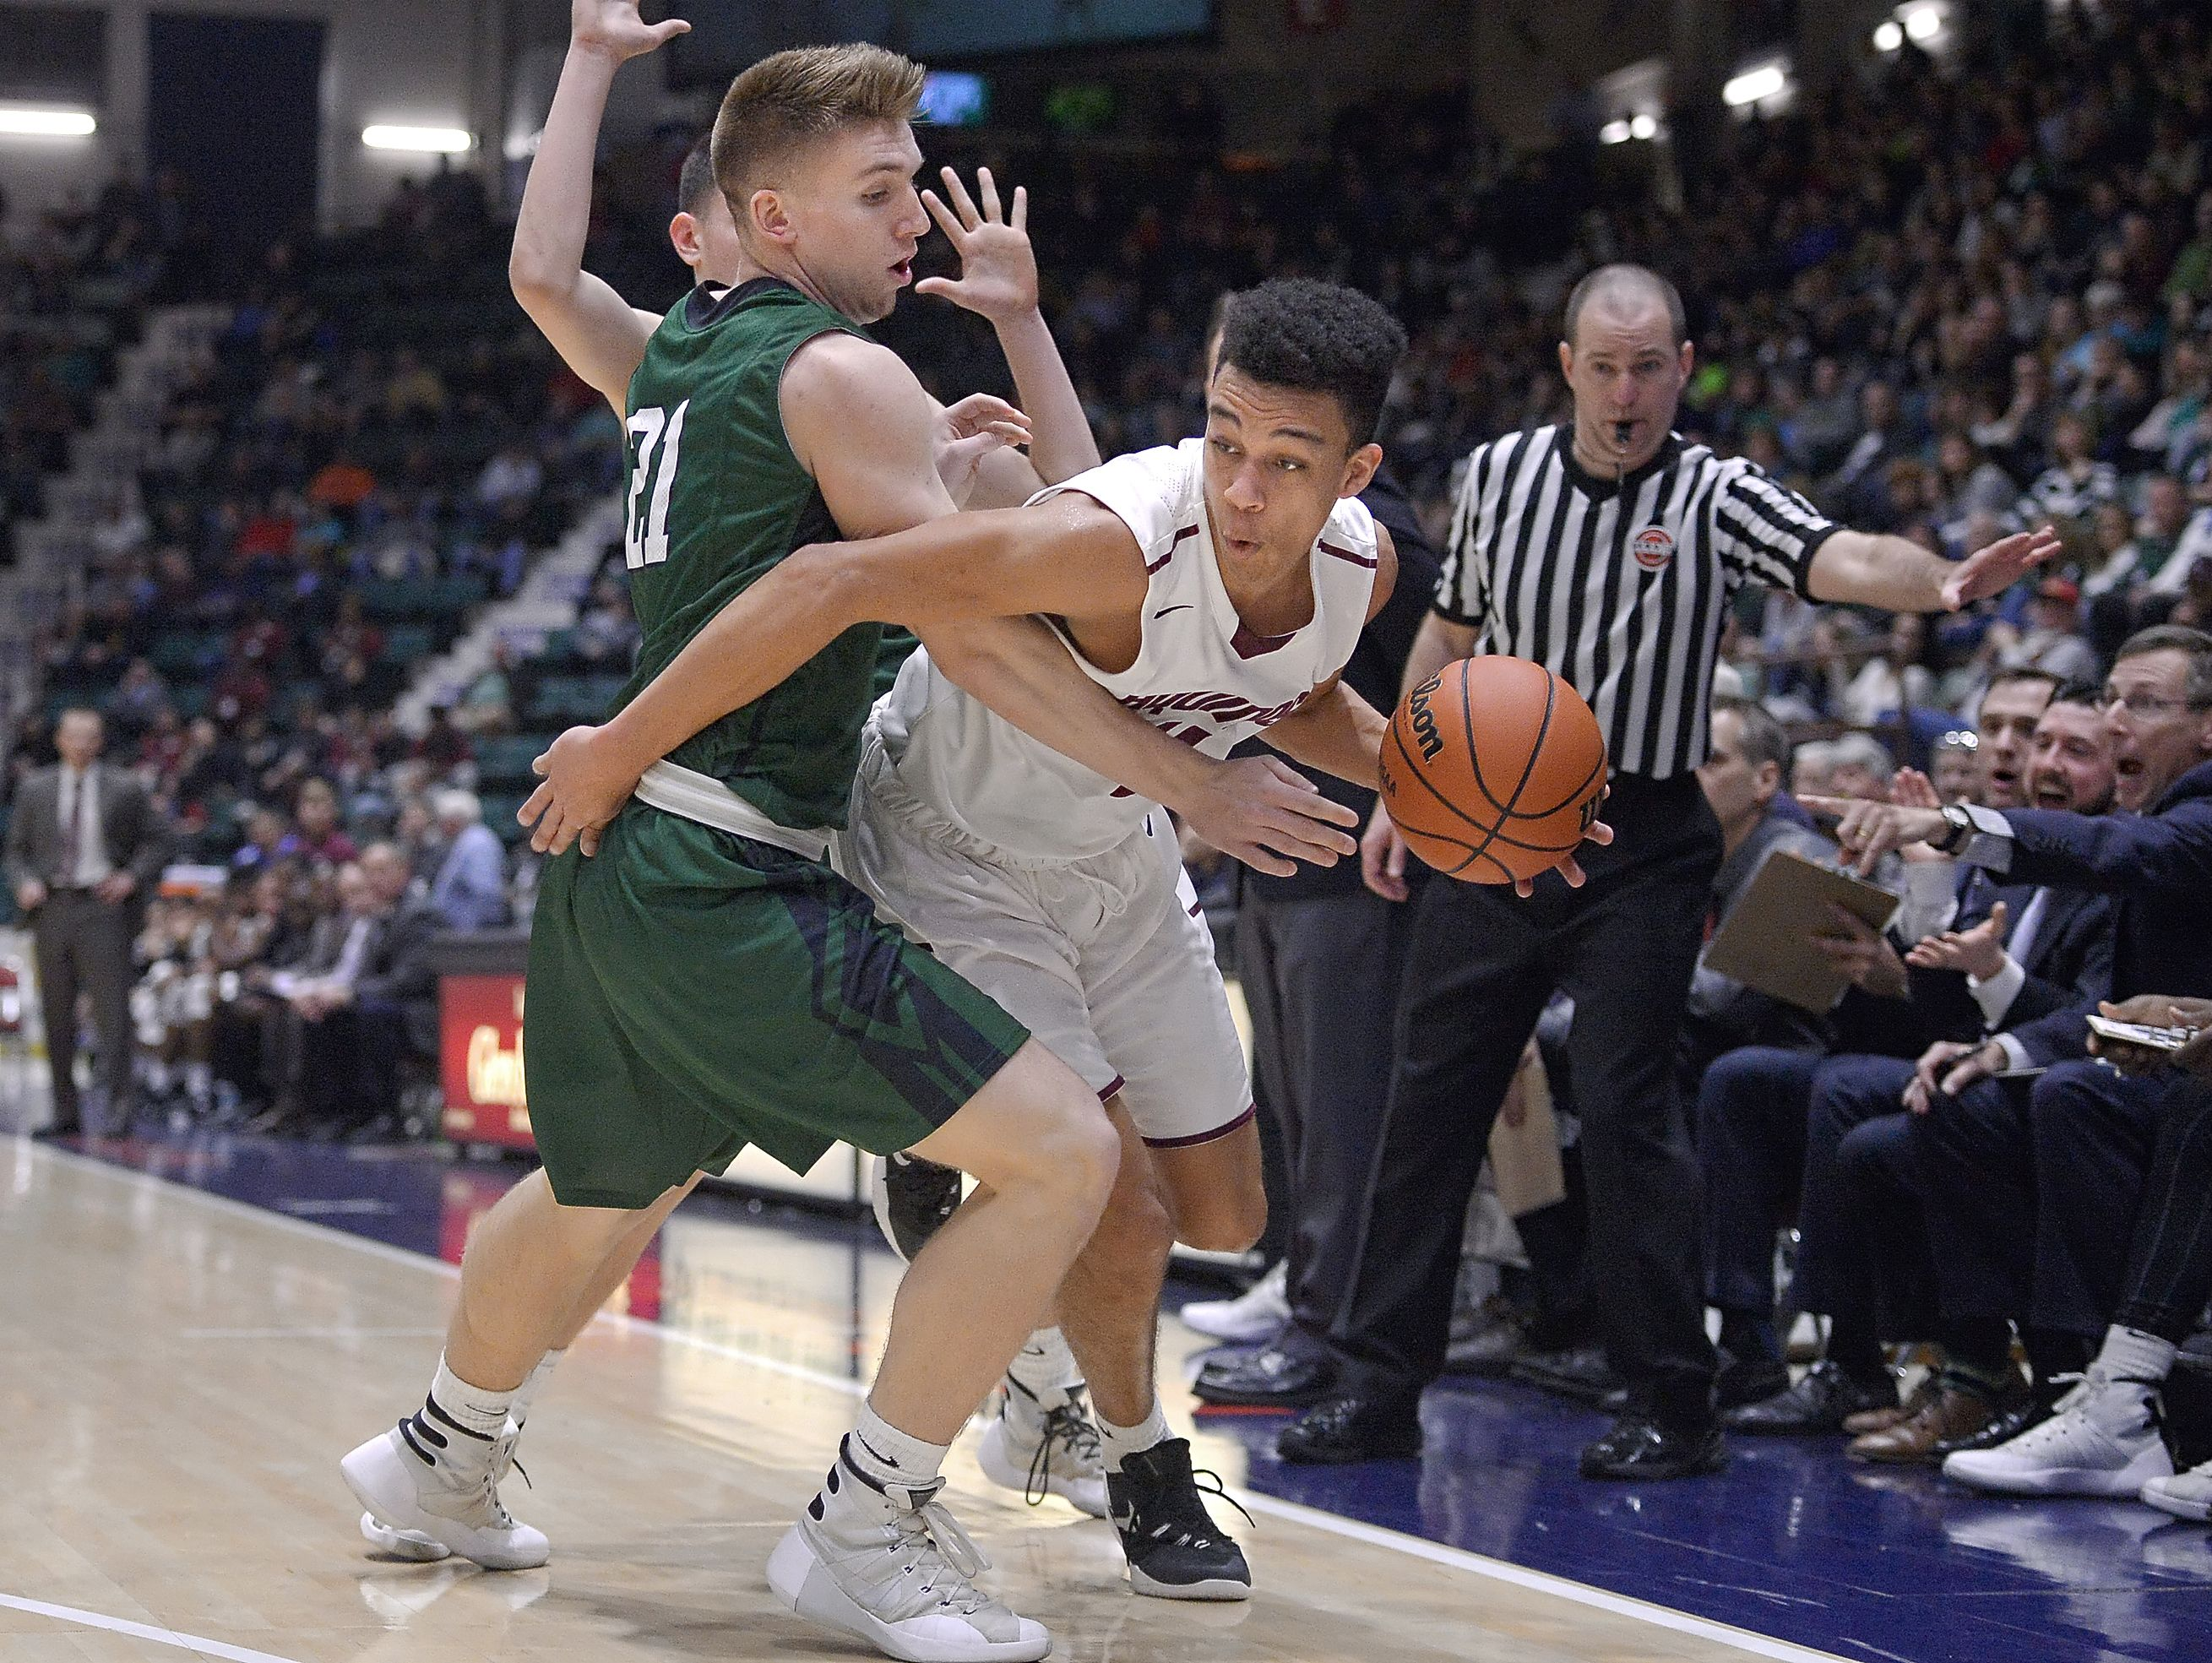 Aquinas' Jason Hawkes, right, moving around Shenendehowa defender Evan Paddock during the NYSPHSAA Class AA state semifinals in Glens Falls.